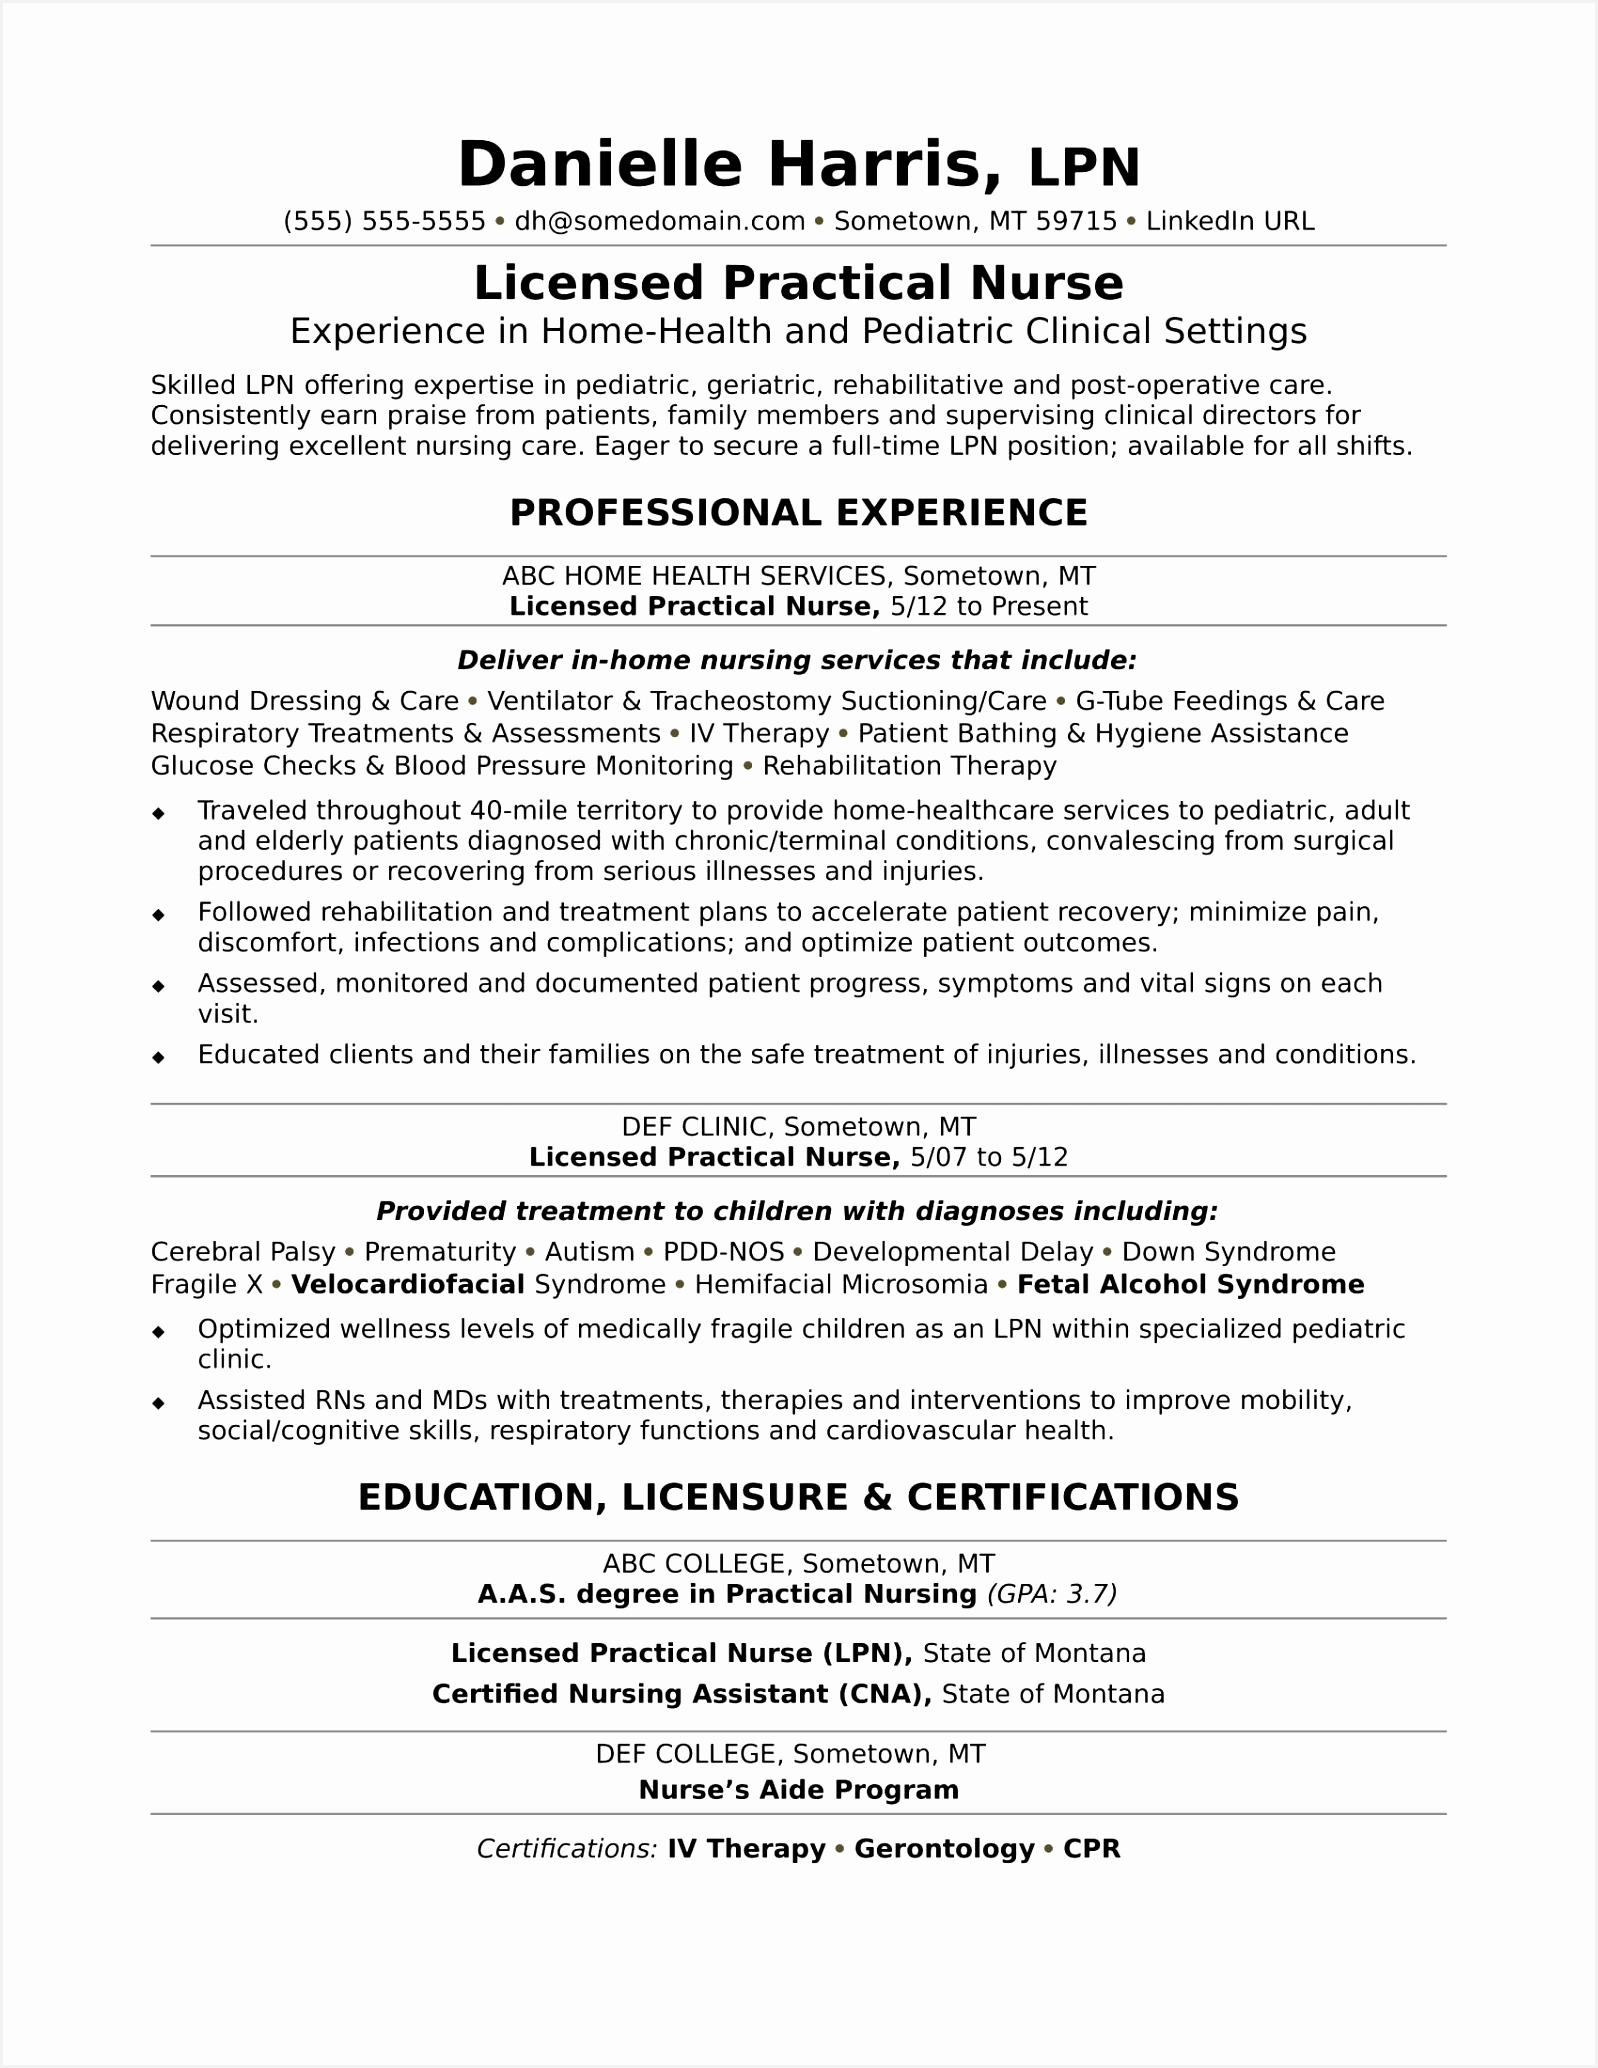 Examples Of Registered Nurse Resume Aaaei Elegant Registered Nurse Resume Sample Luxury Elegant New Nurse Resume20681598